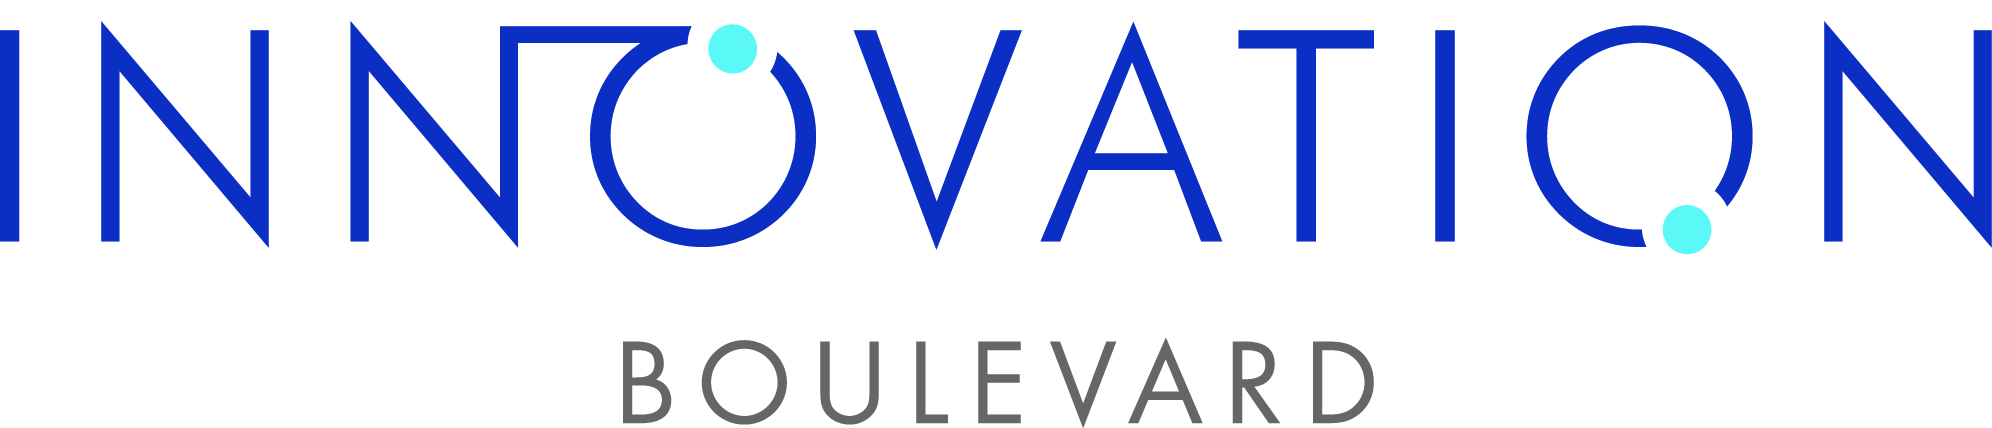 Innovation Boulevard logo